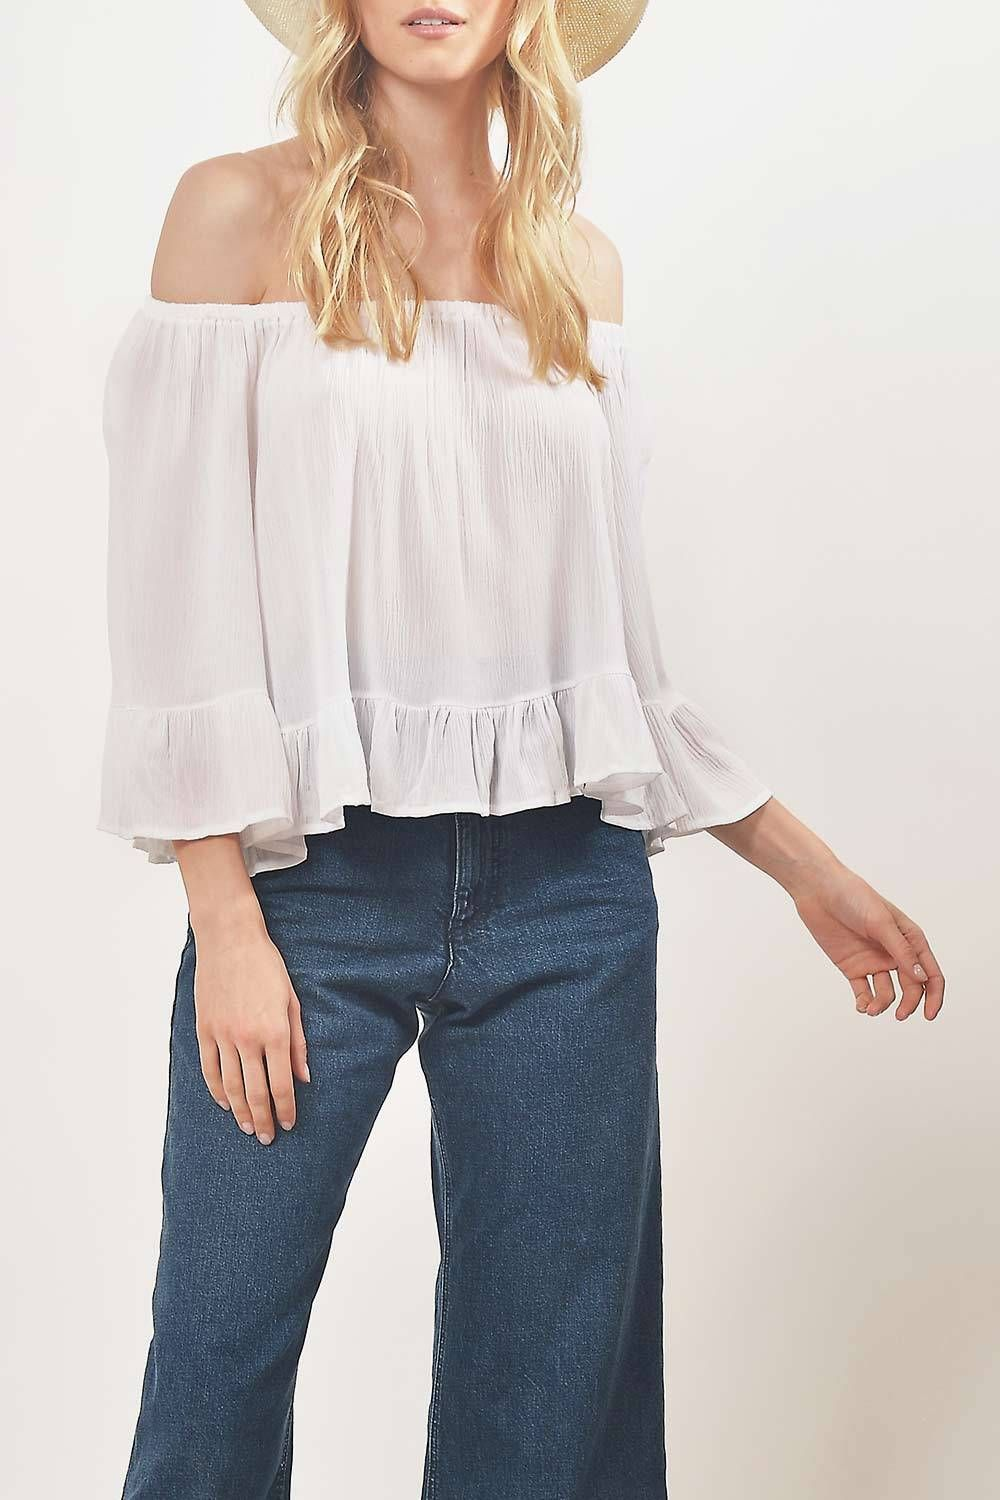 0cb77dc6f3d10 Coby Cold Shoulder Ruffle Top White